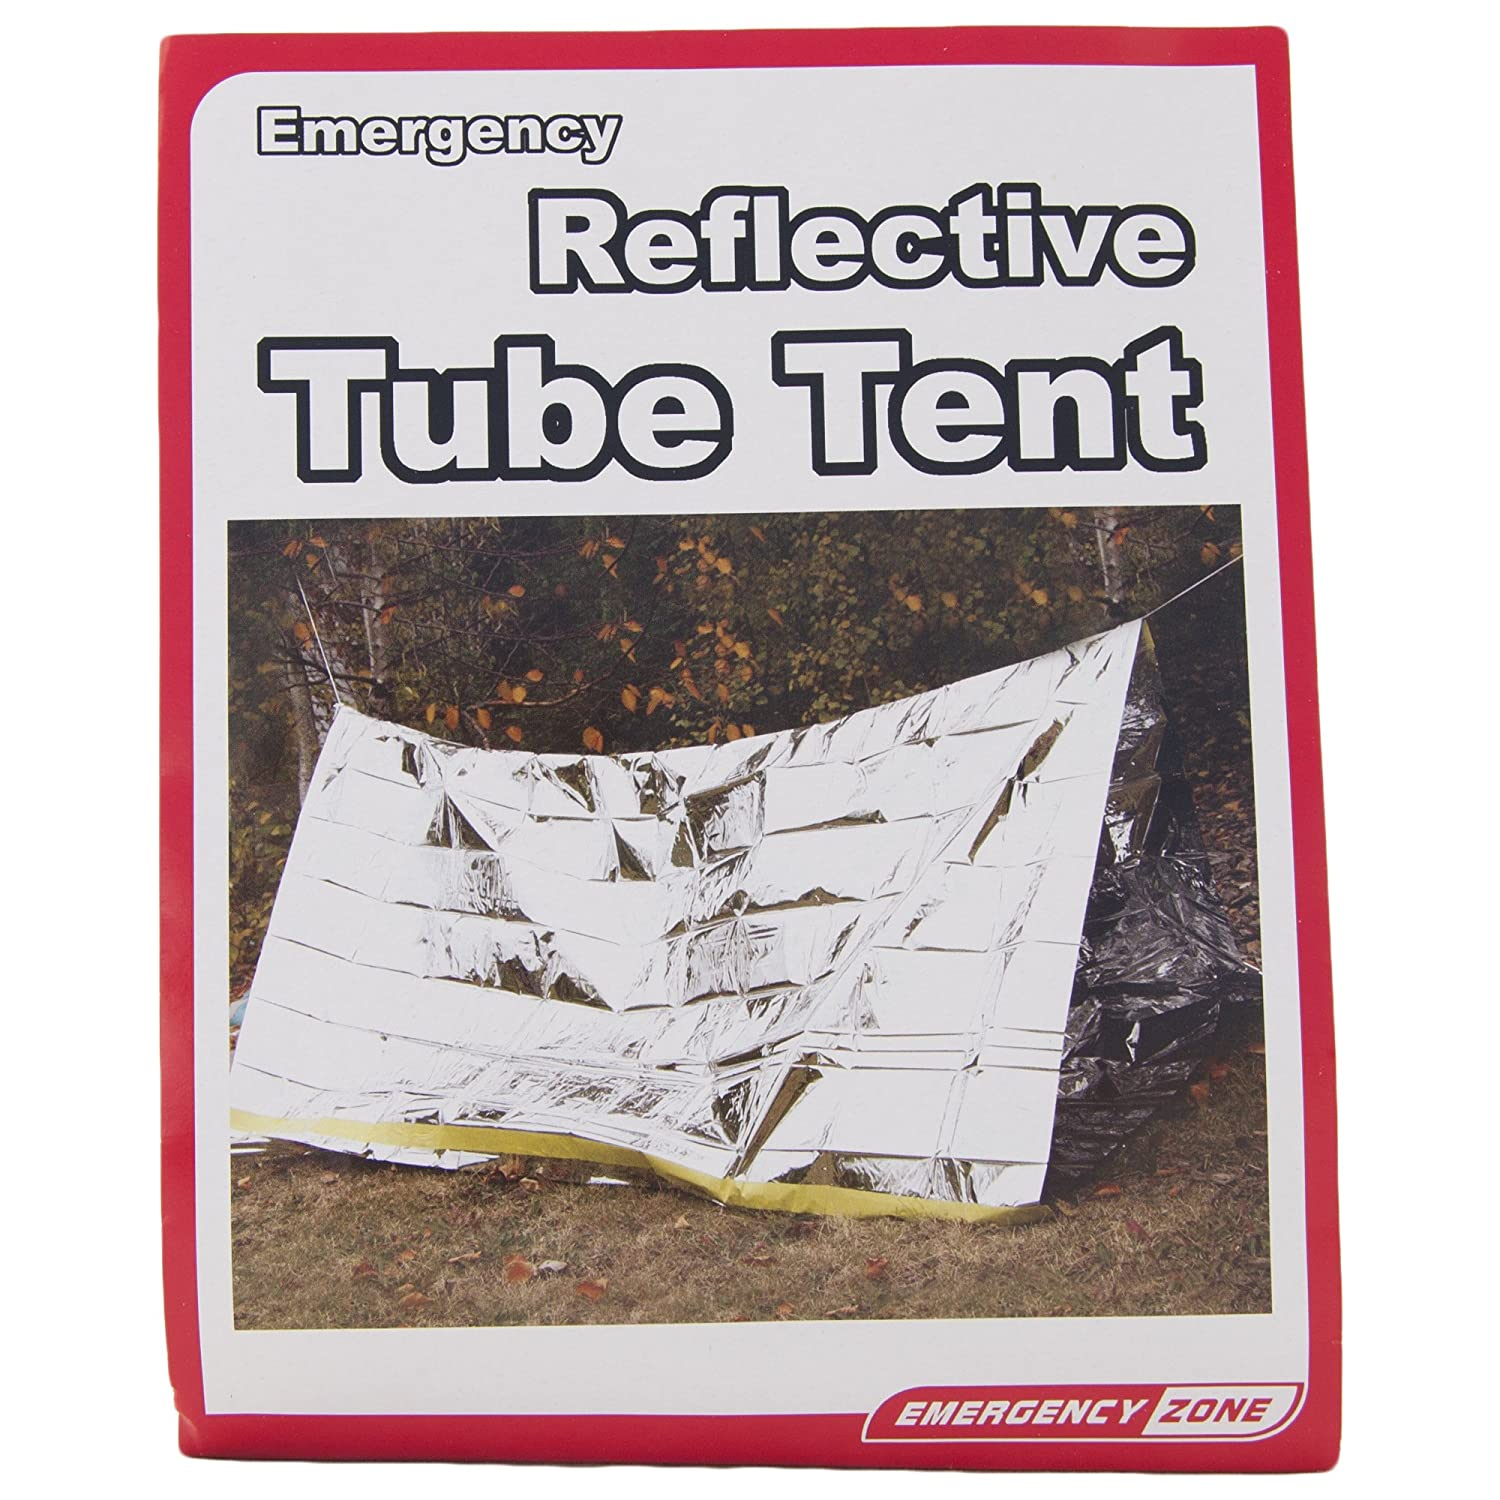 Amazon.com  Emergency Shelter Tent Reflective Tube Tent Cold Weather Emergency Shelter Emergency Zone Brand 1 and 3 Packs Available  Sports u0026 Outdoors  sc 1 st  Amazon.com & Amazon.com : Emergency Shelter Tent Reflective Tube Tent Cold ...